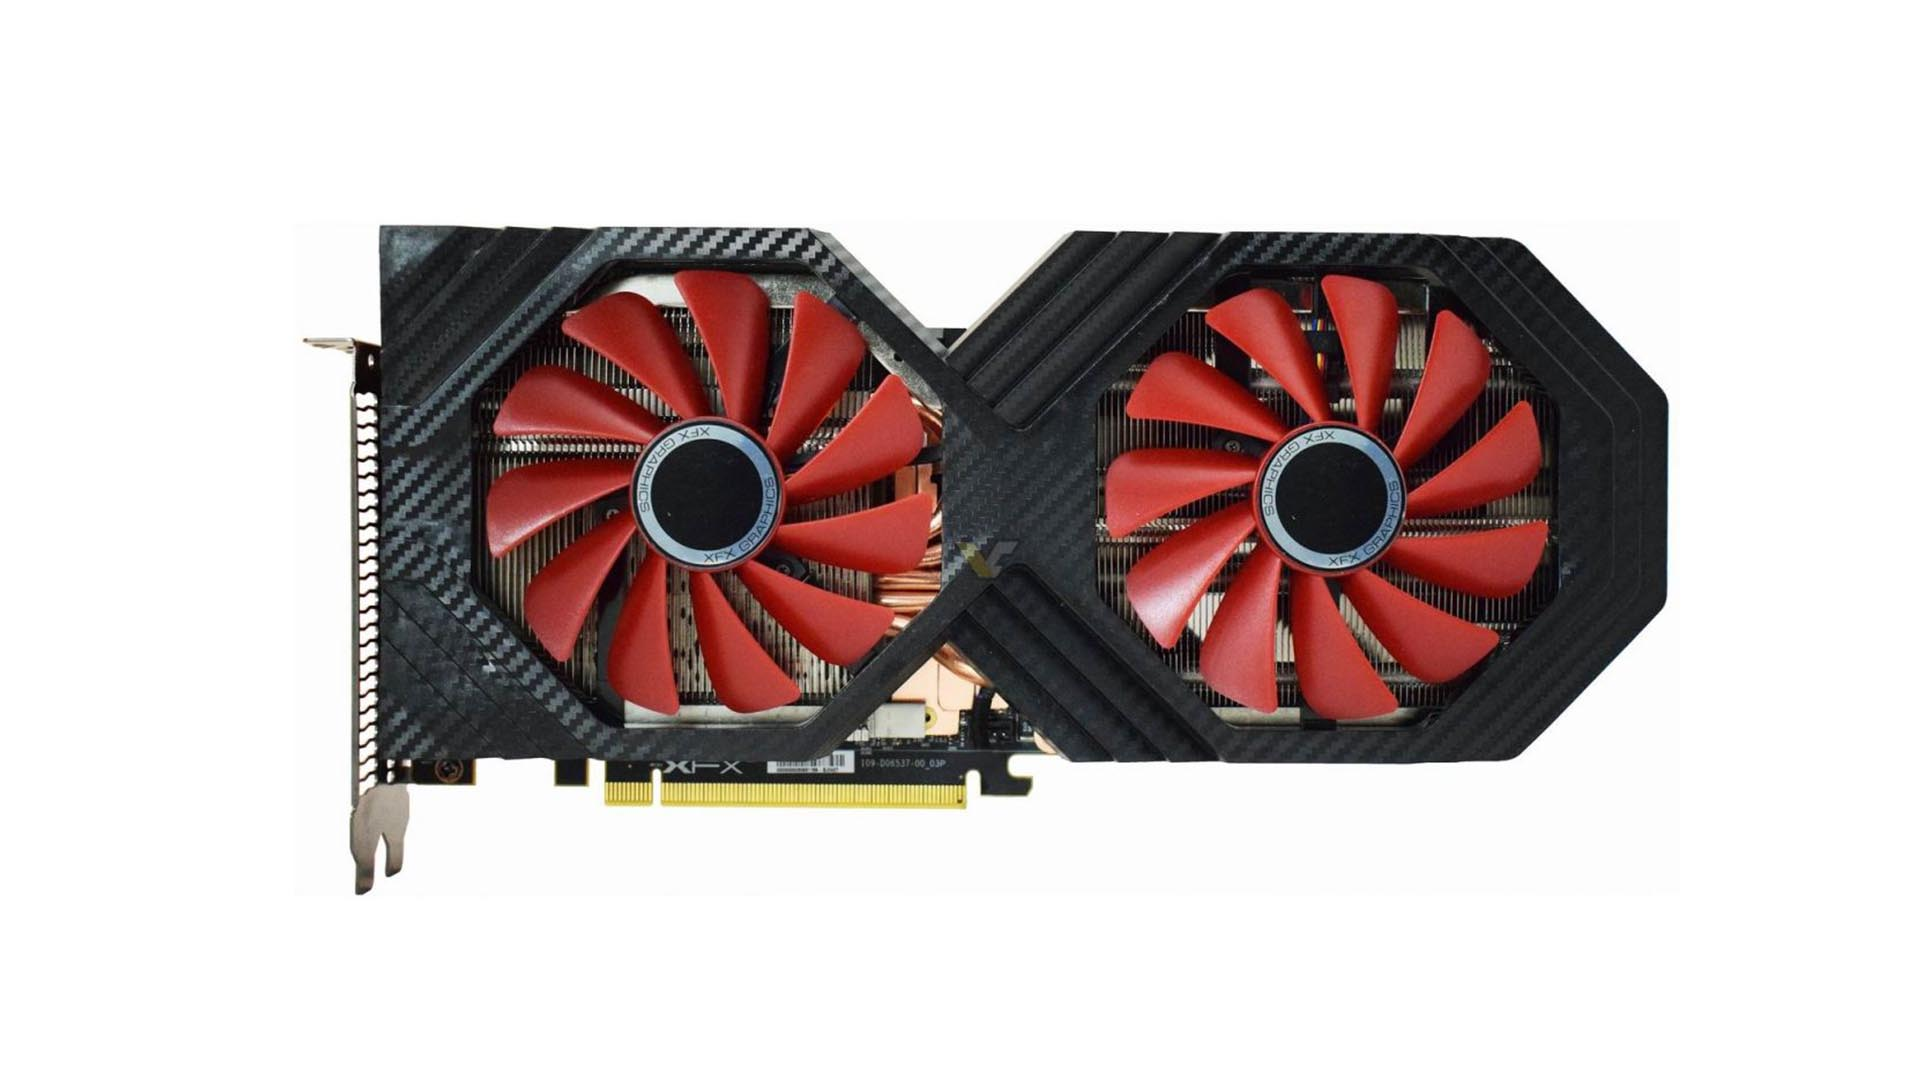 XFX RX Vega 64 8GB Double Edition 登場, 同步還有 RX Vega 56